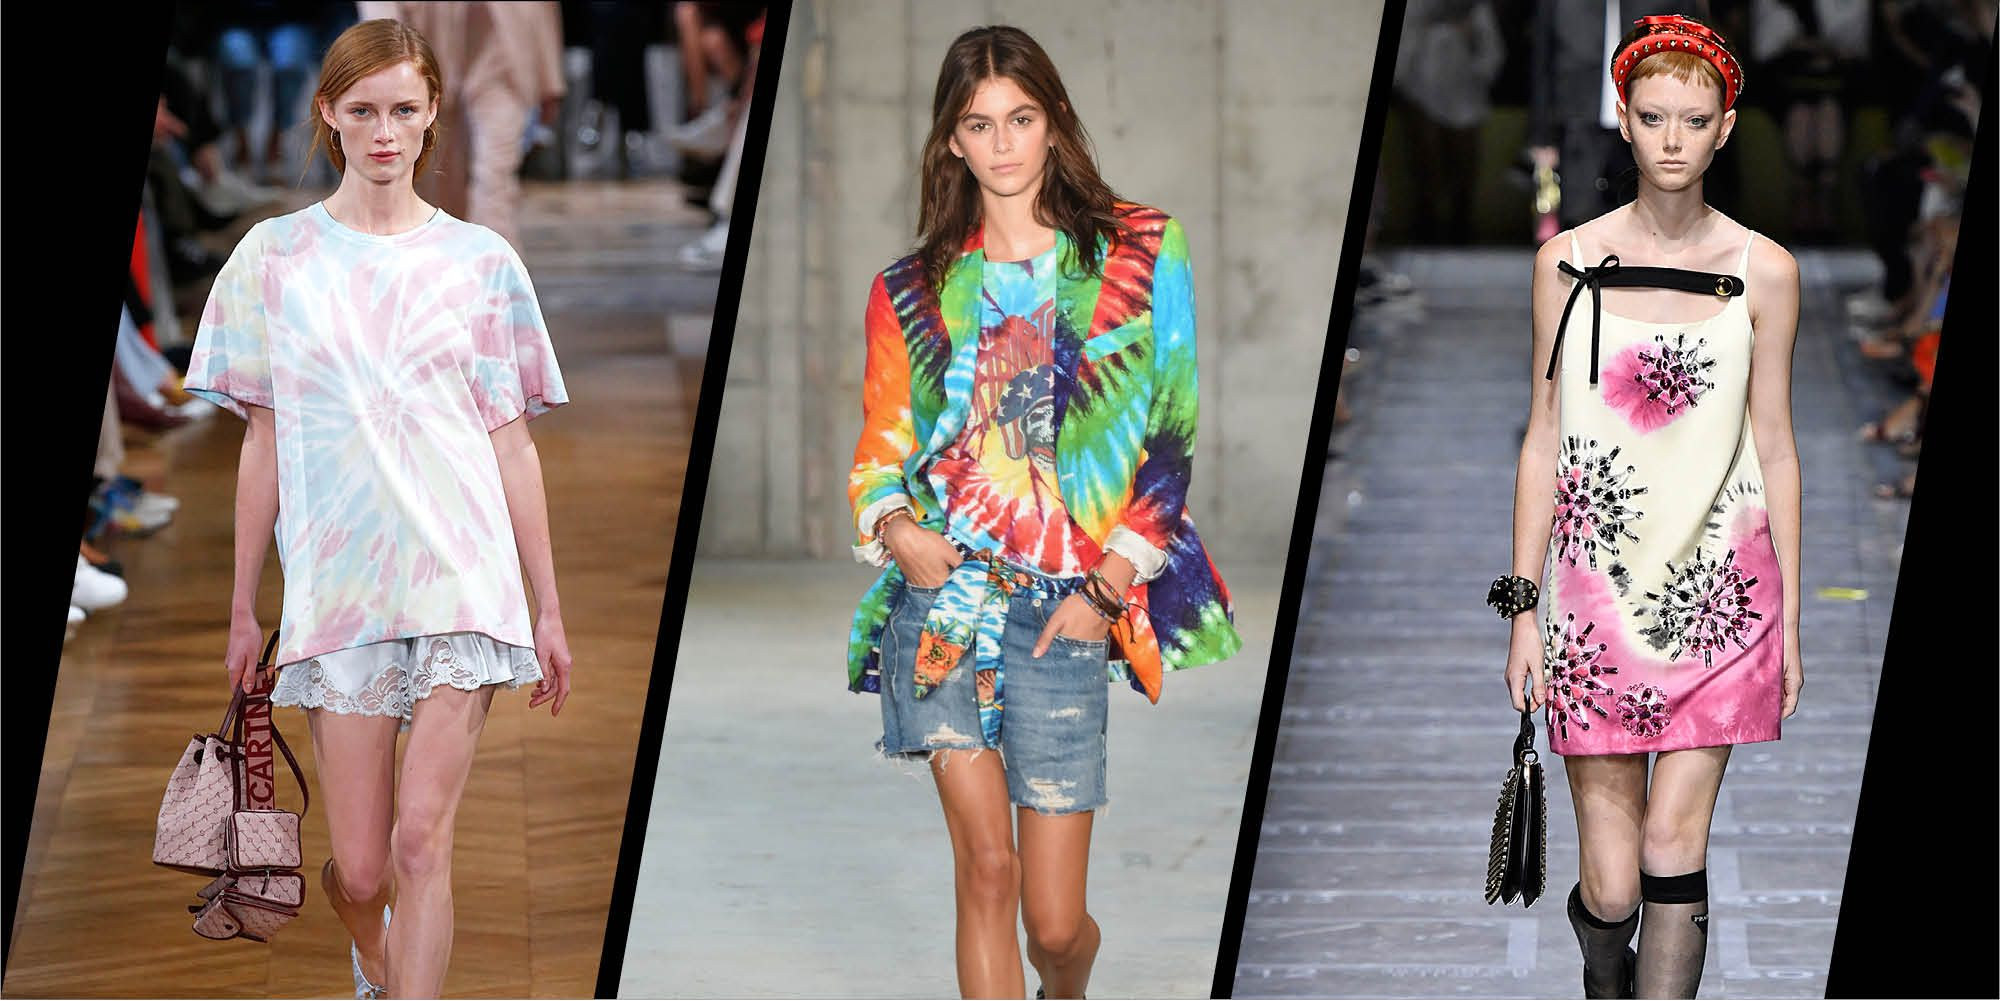 ad3b280741 Tie dye is a major fashion trend for 2019